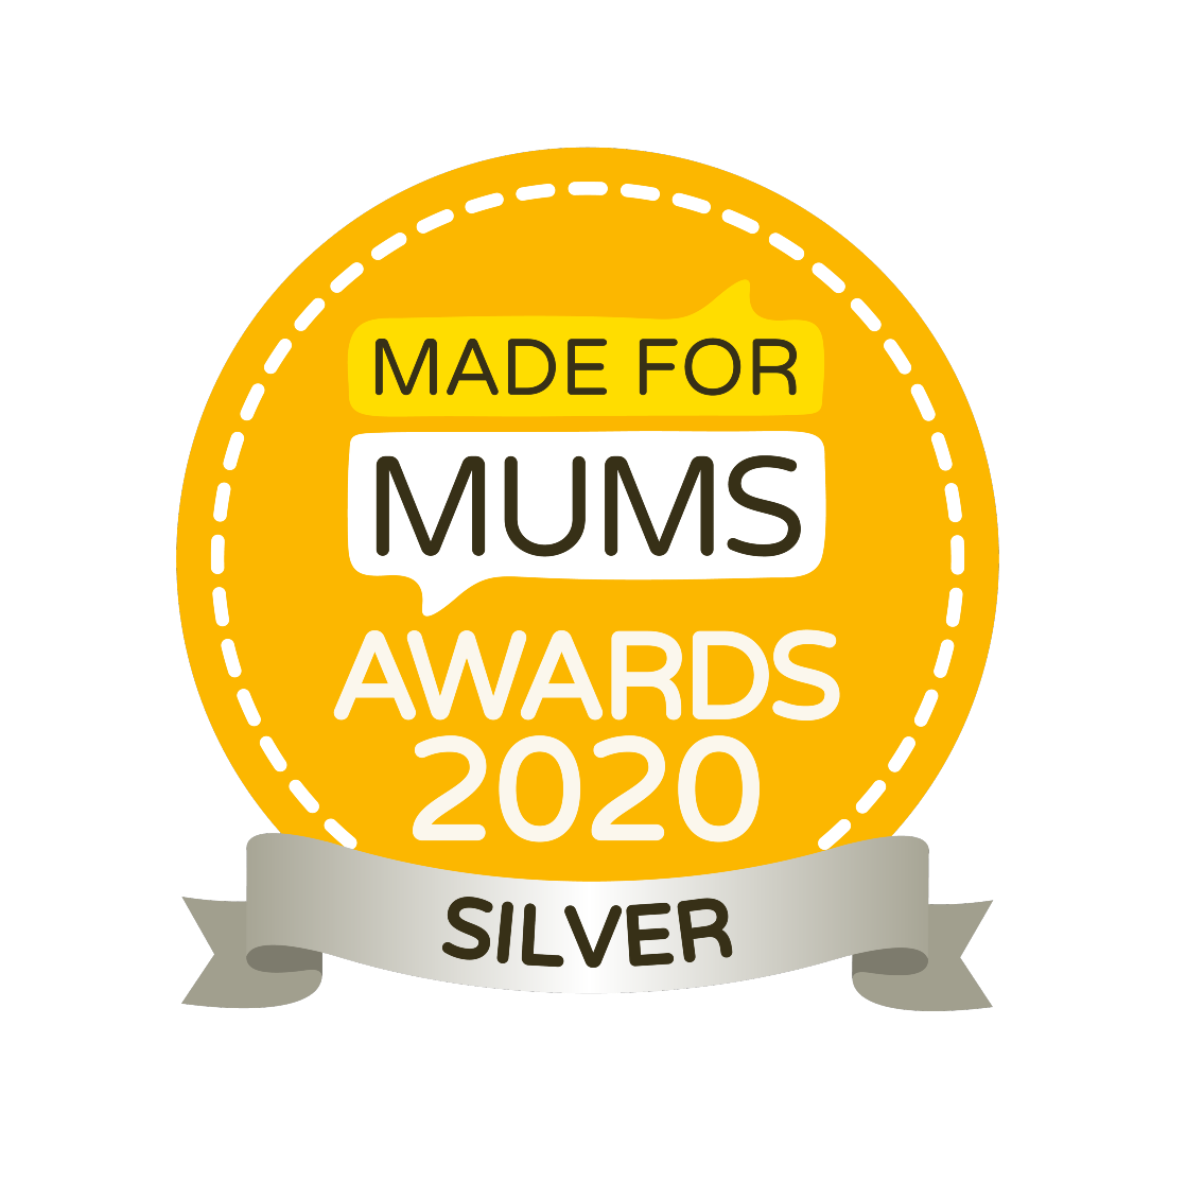 Made for Mums Silver Award 2020